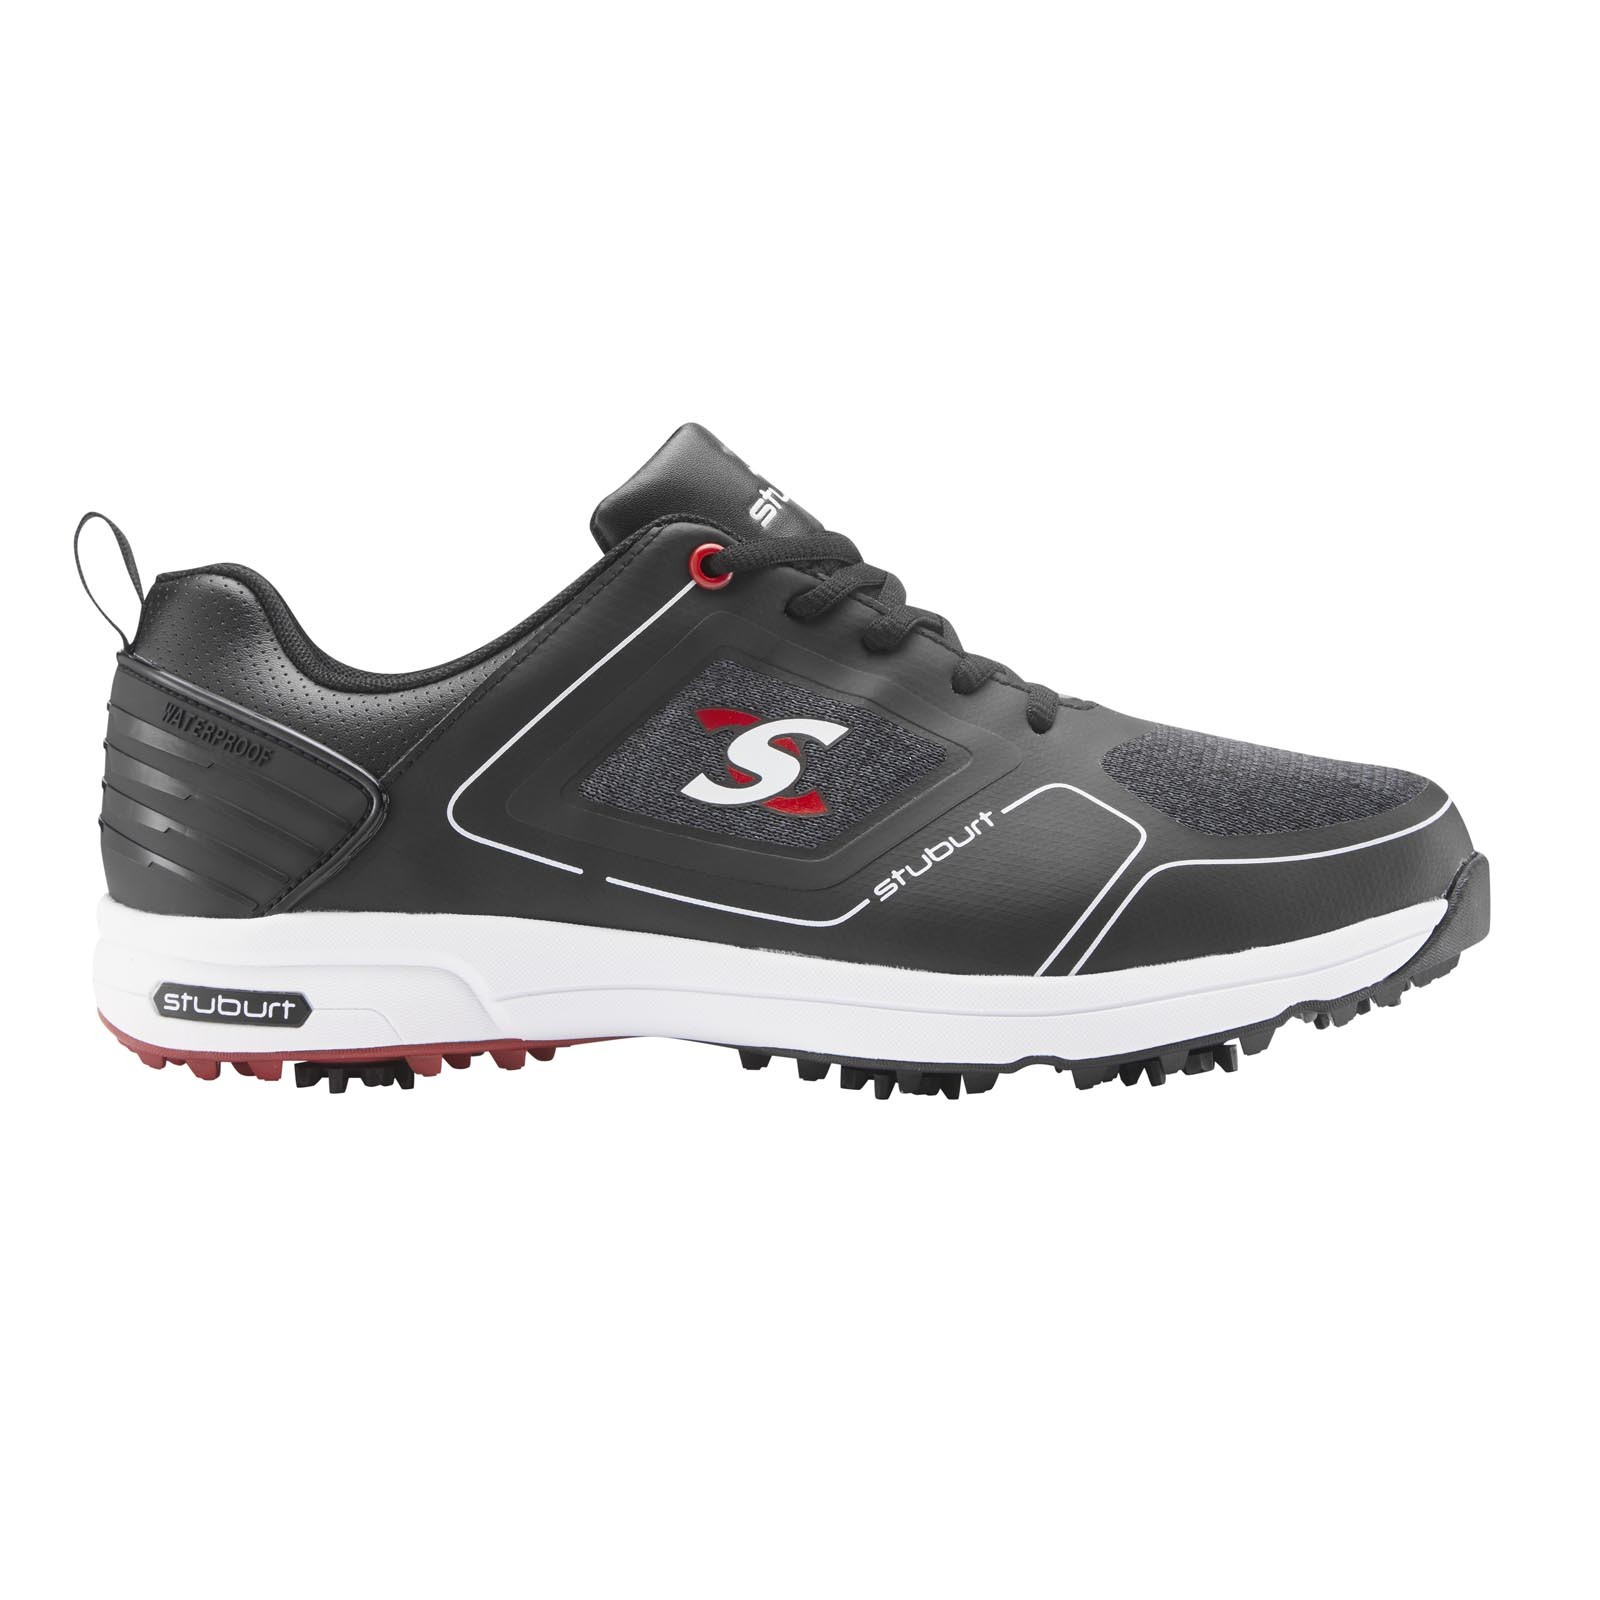 Stuburt XP II Golf Shoes